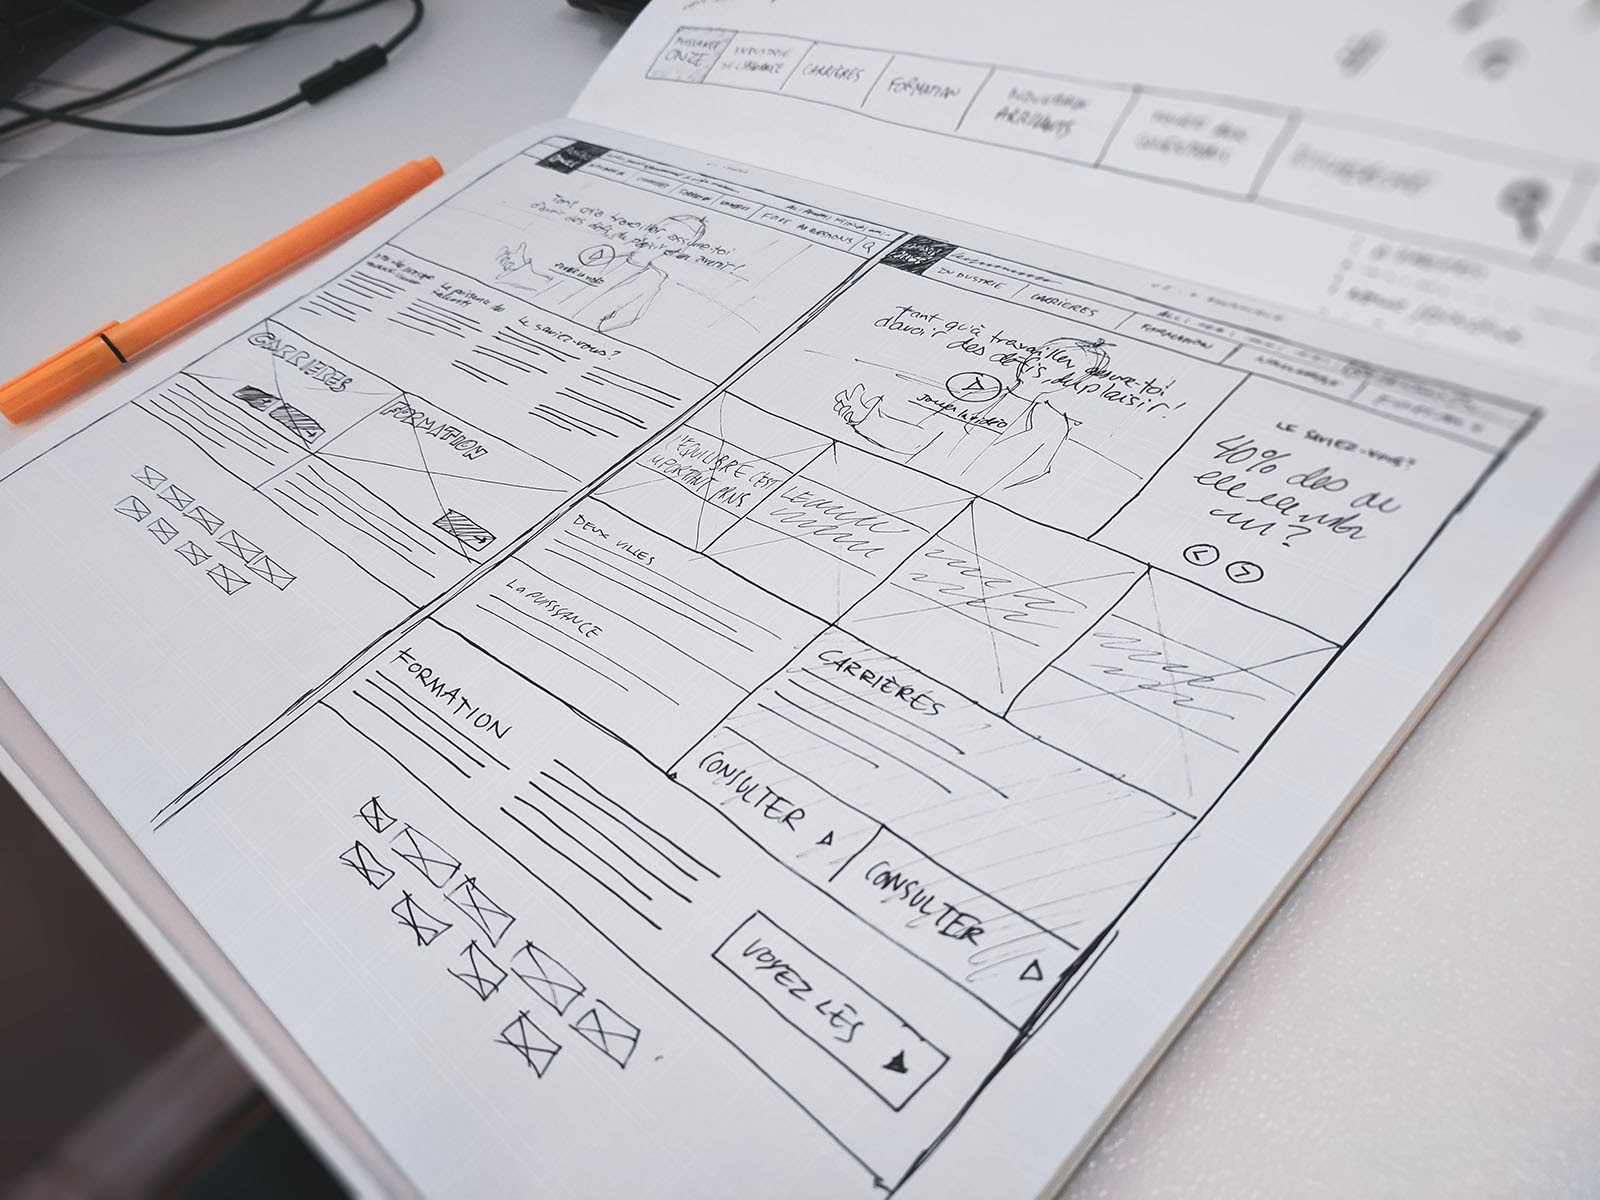 Example of a wireframe sketch. Photo by Sigmund on Unsplash